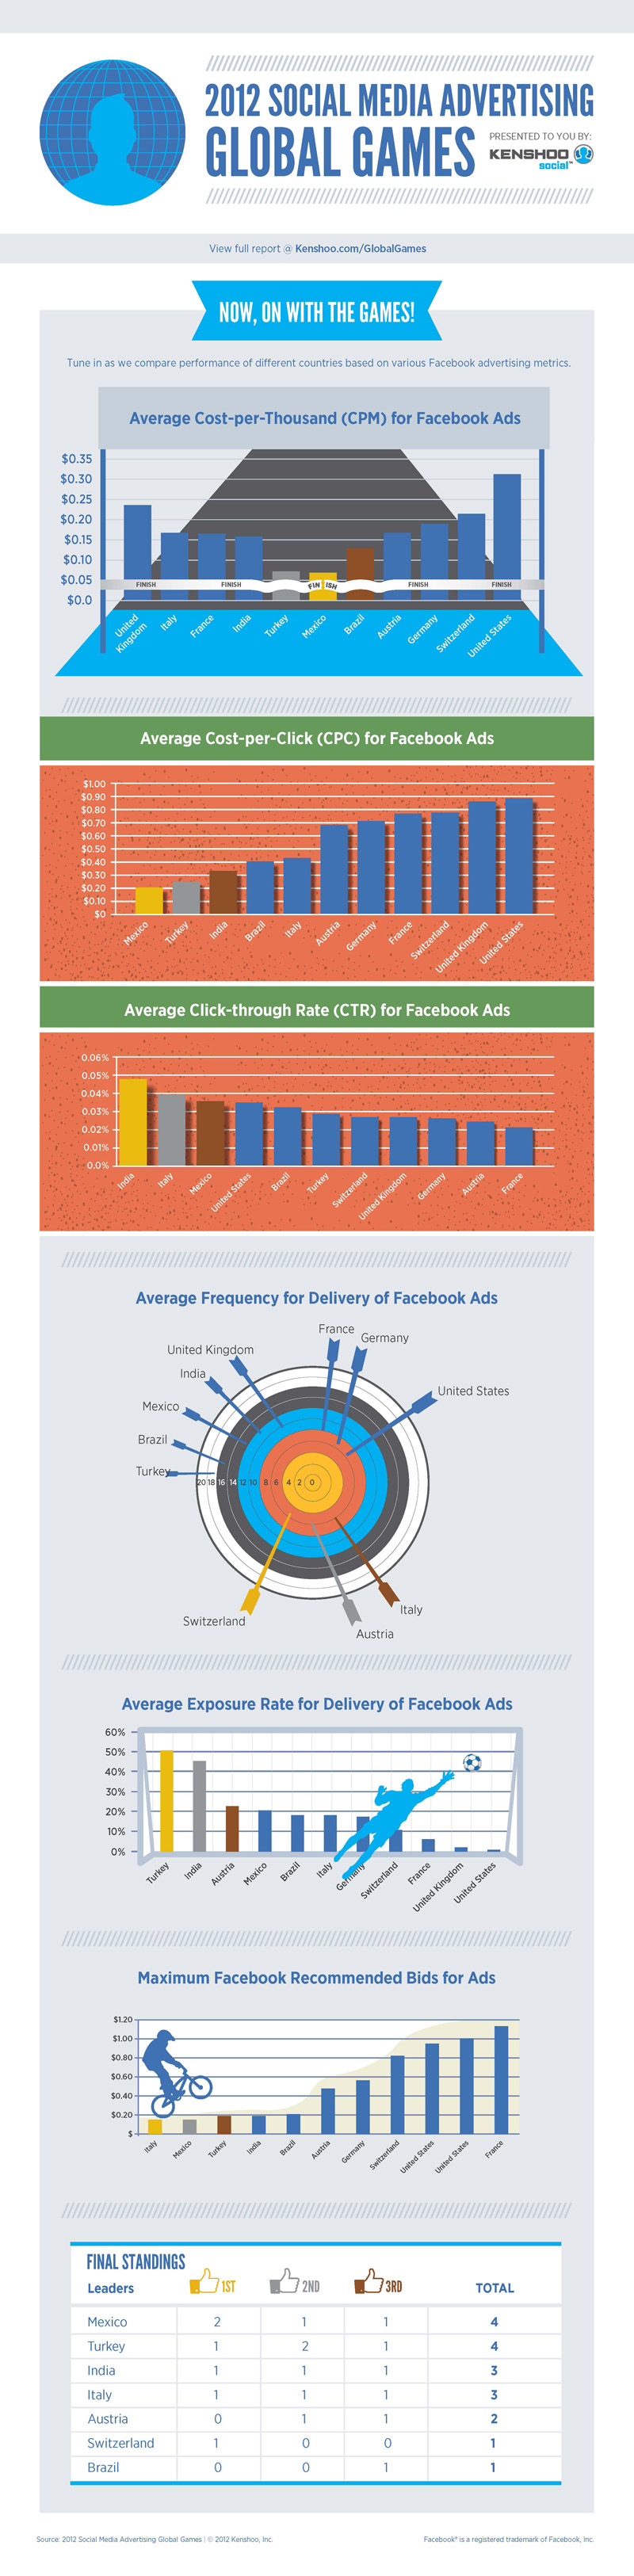 2012 Social Media Advertising Global Games Infographic